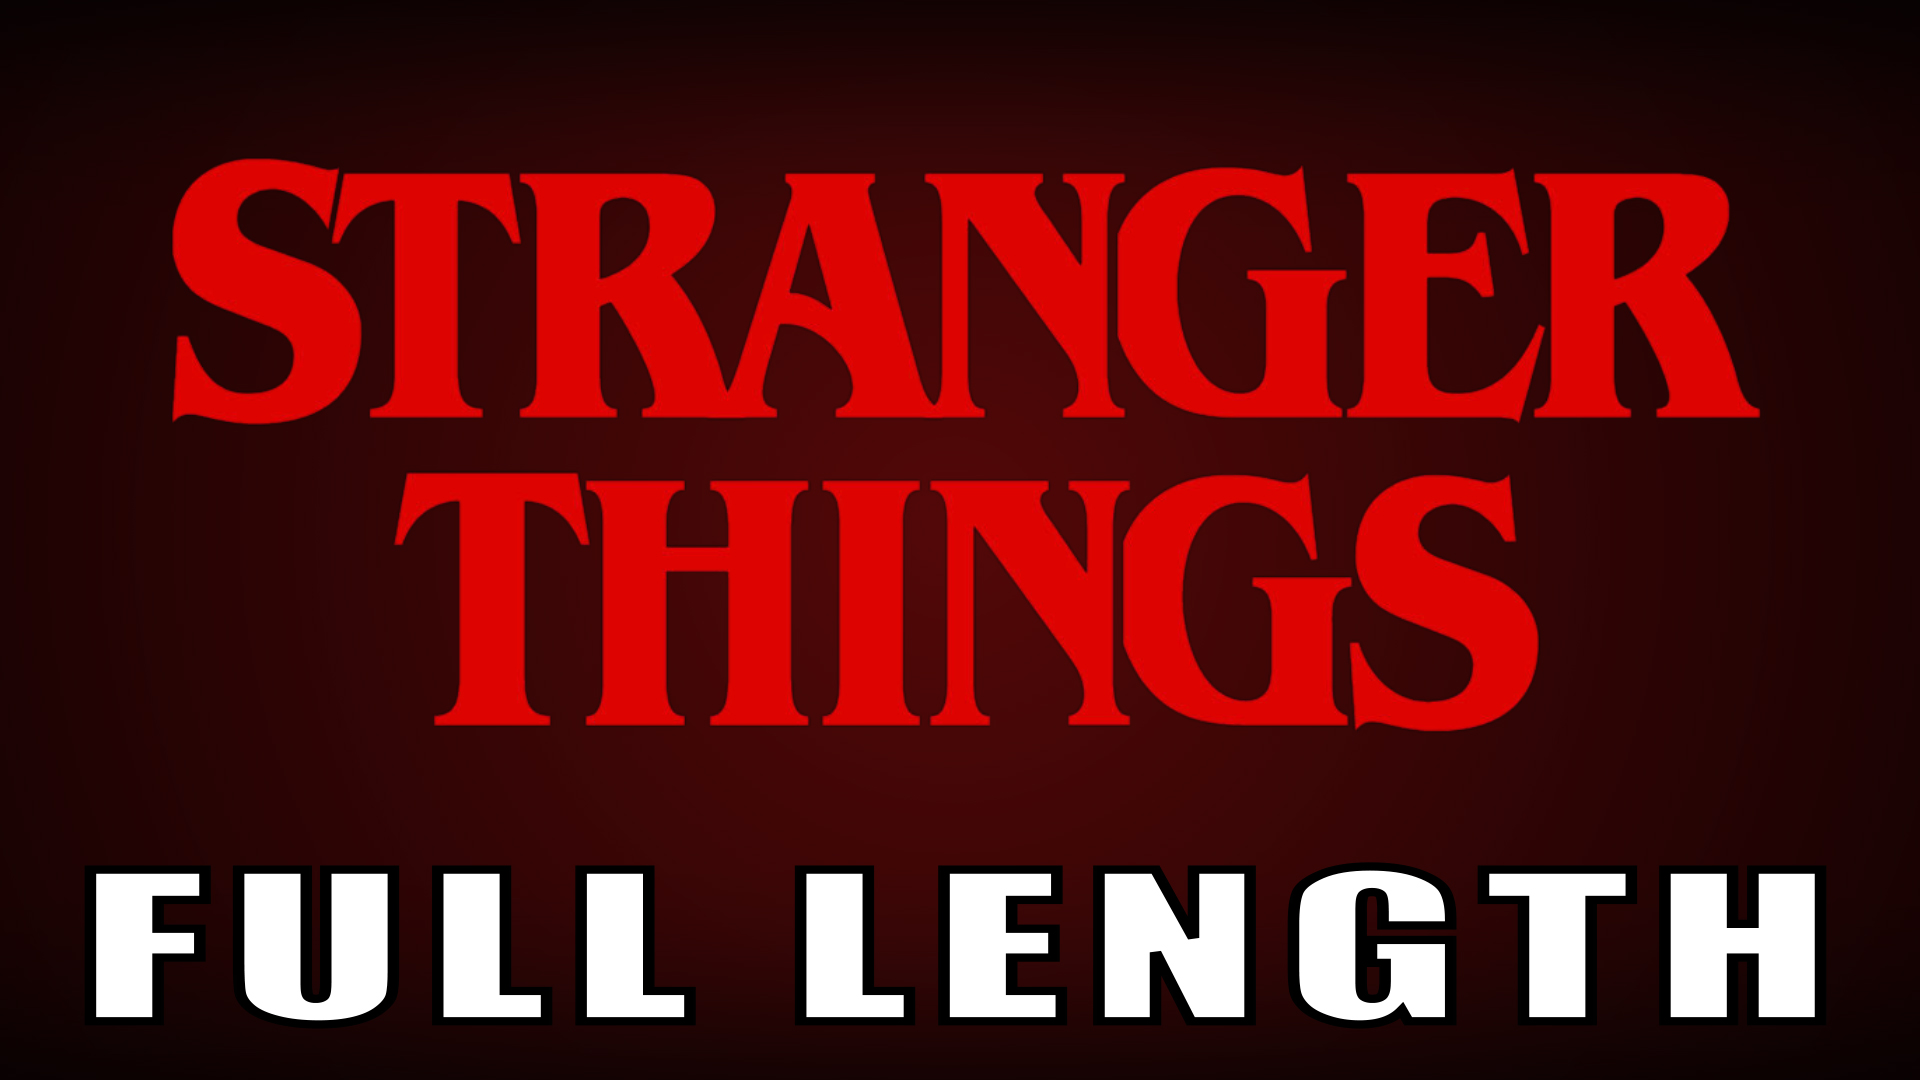 Stranger Things Full Length Icon_00000